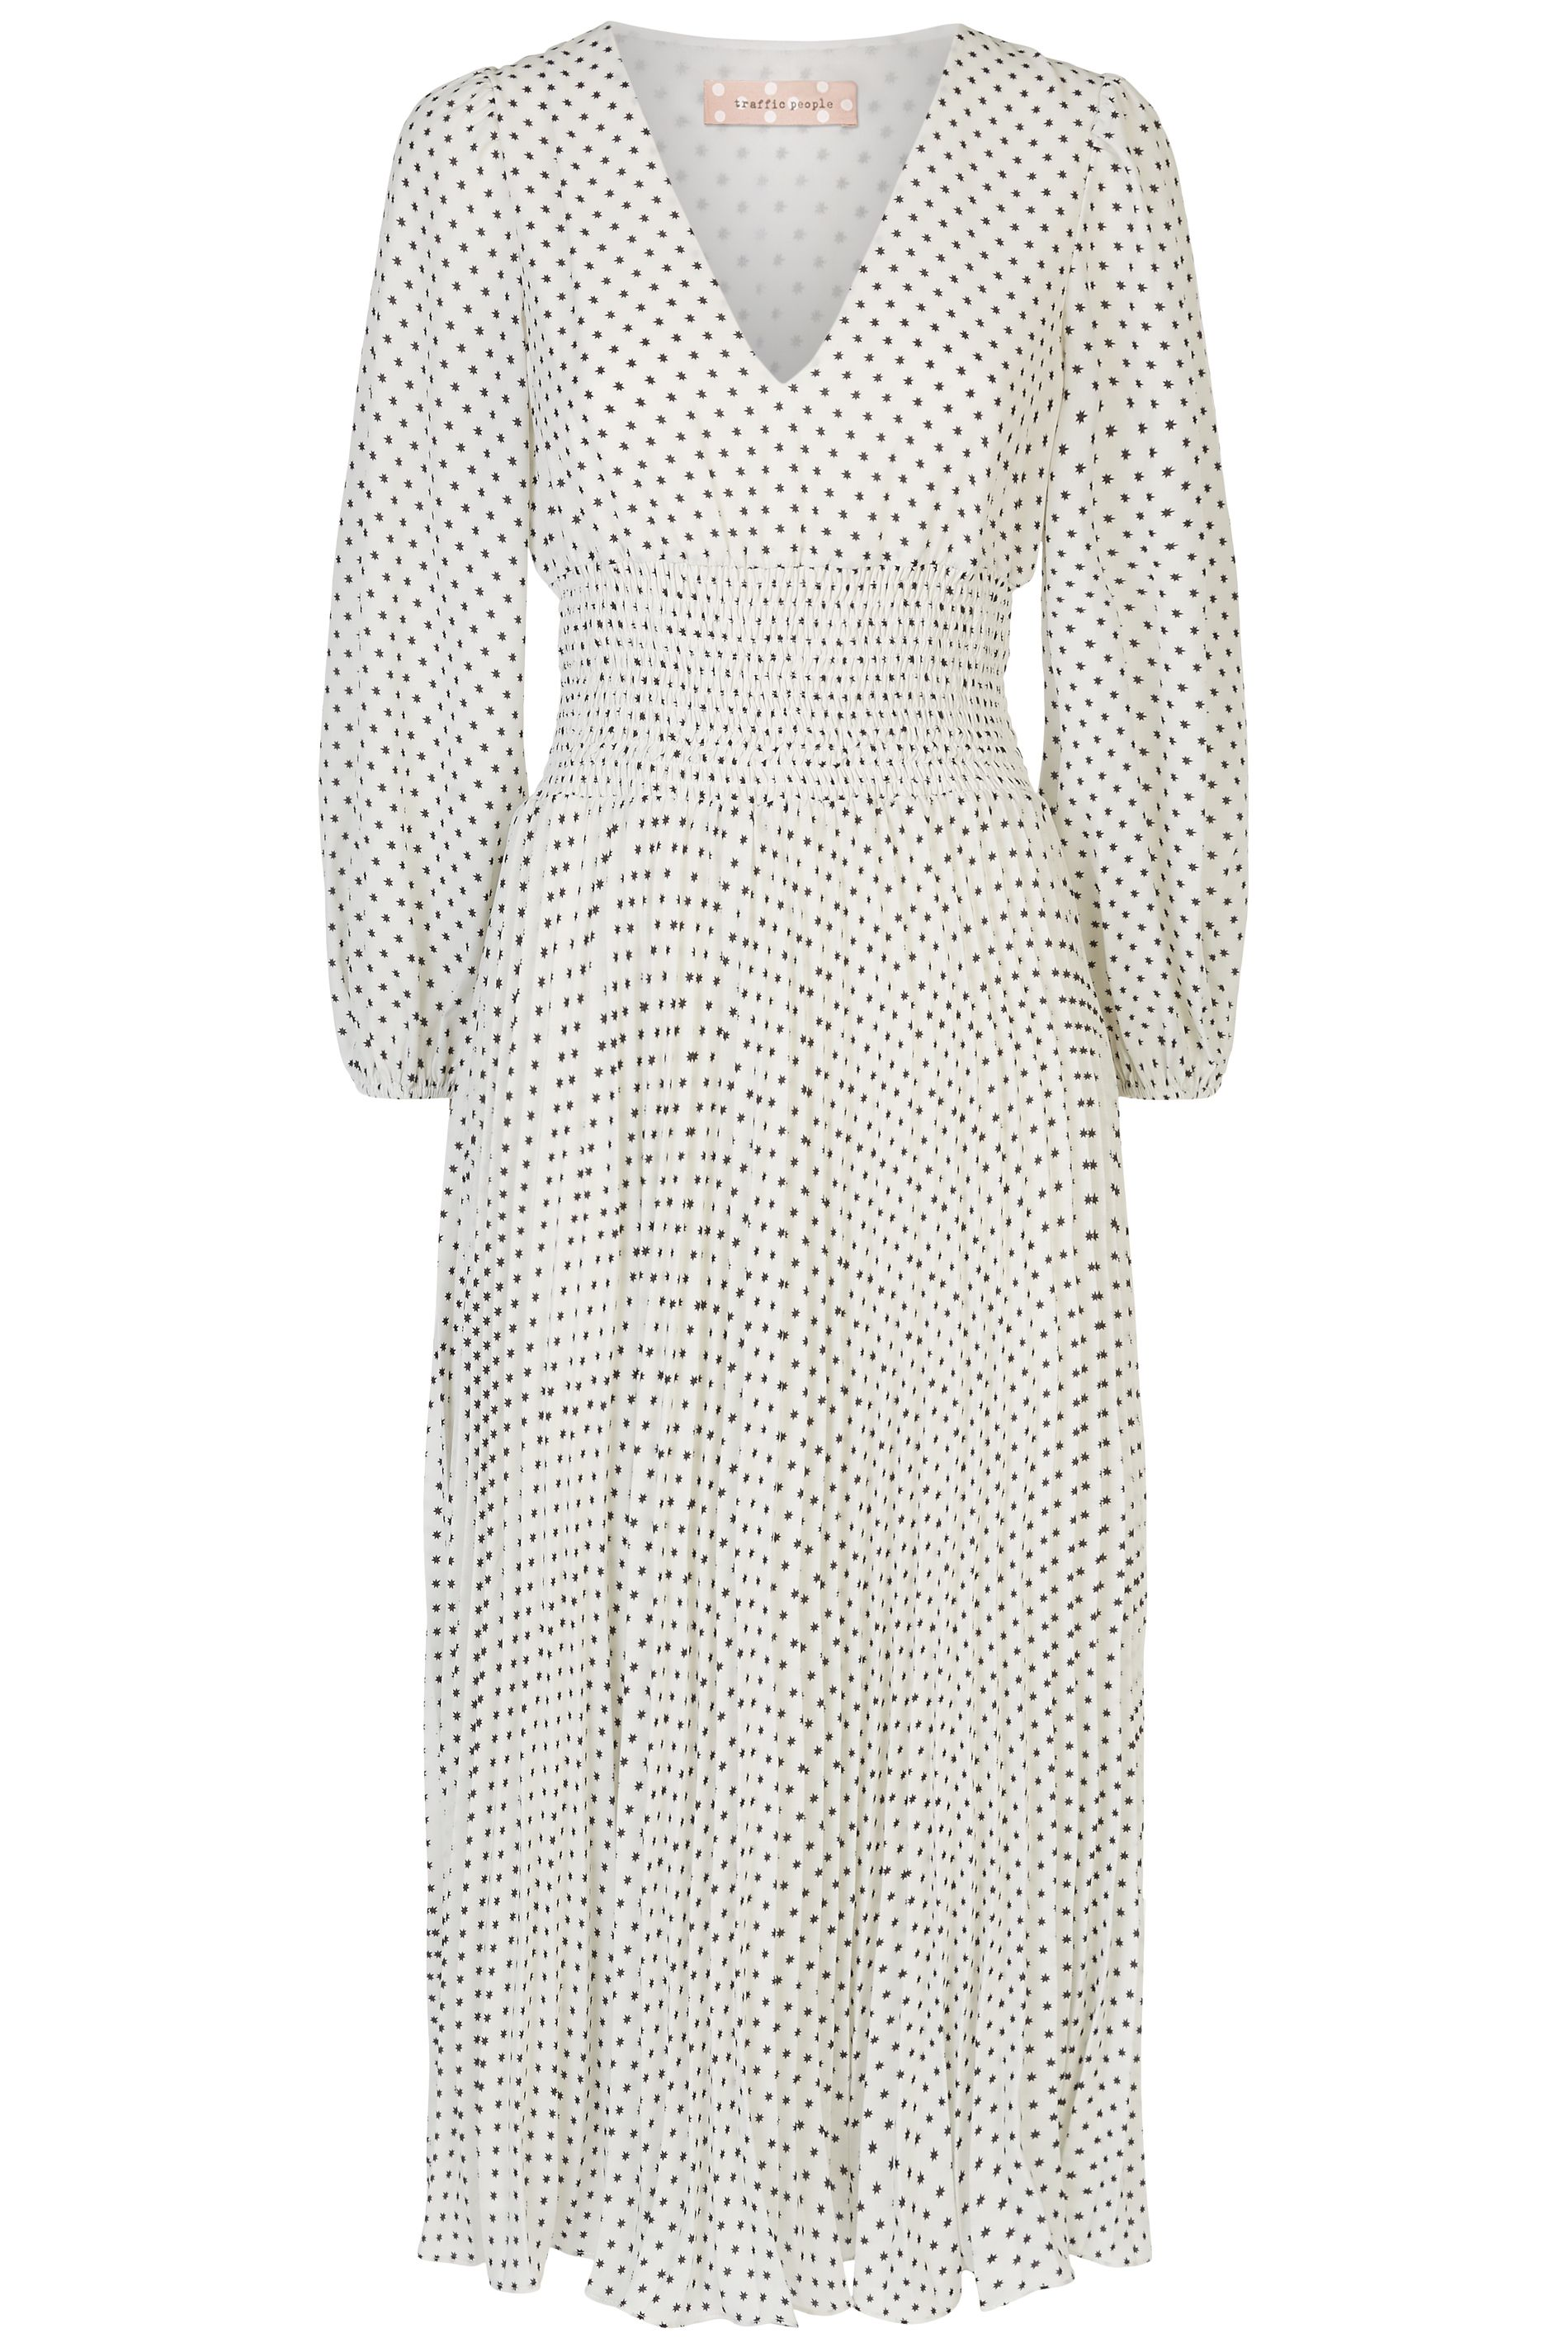 Aurora Star Print Pleated Midi Dress in White